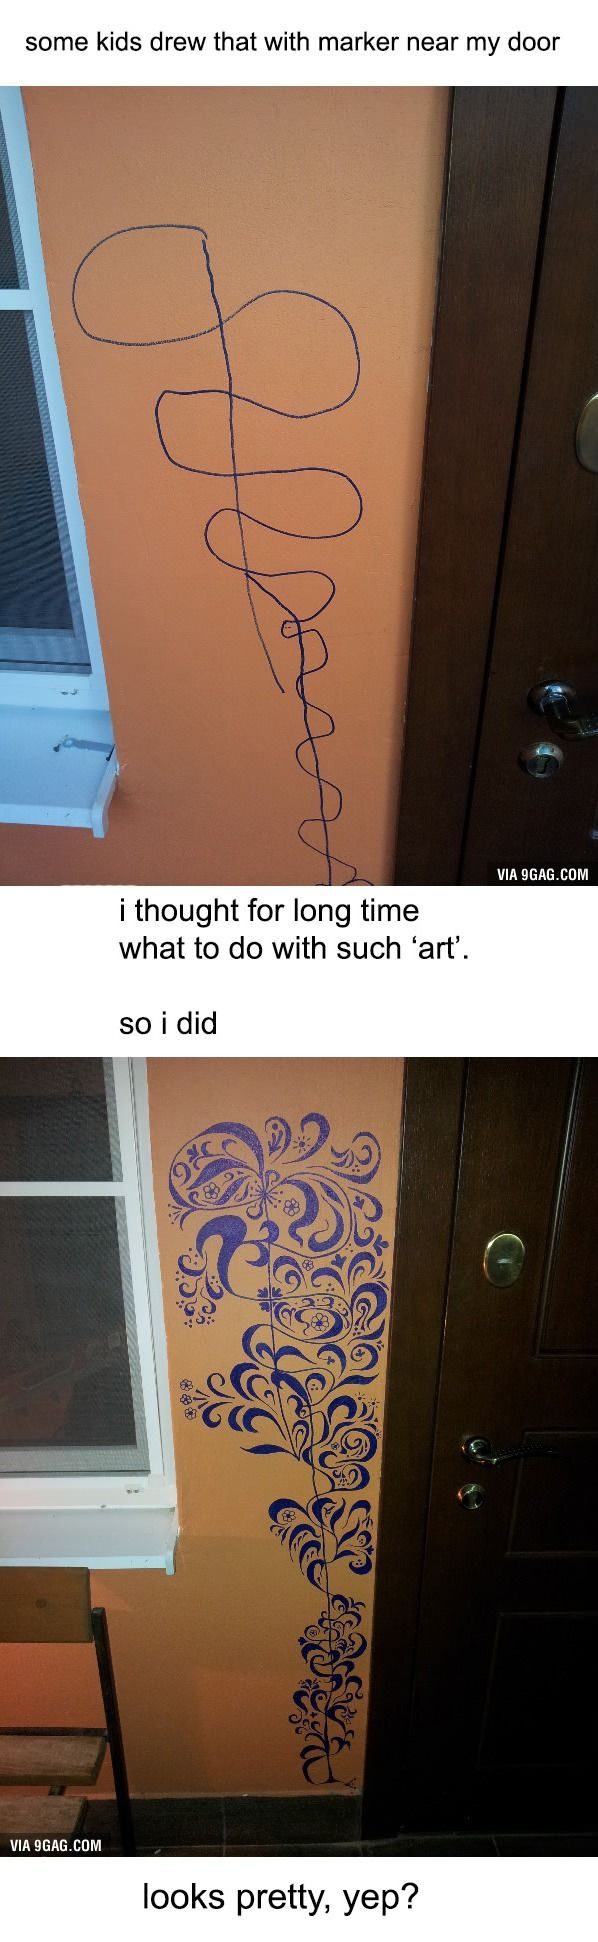 What to do when your kids draw on your walls with permanent markers.